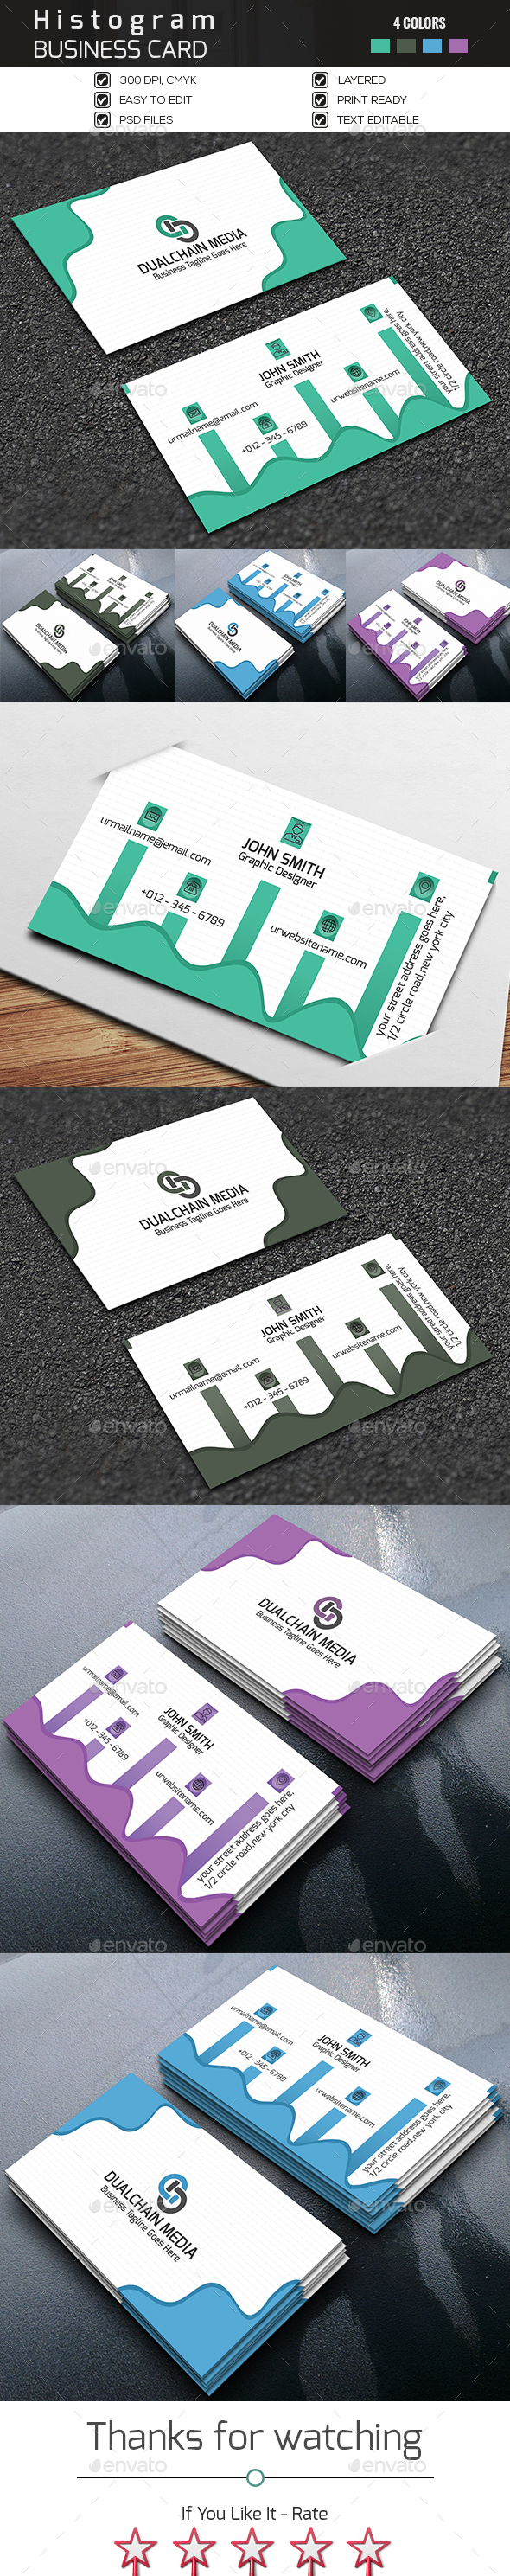 Histogram Business Card - Corporate Business Cards